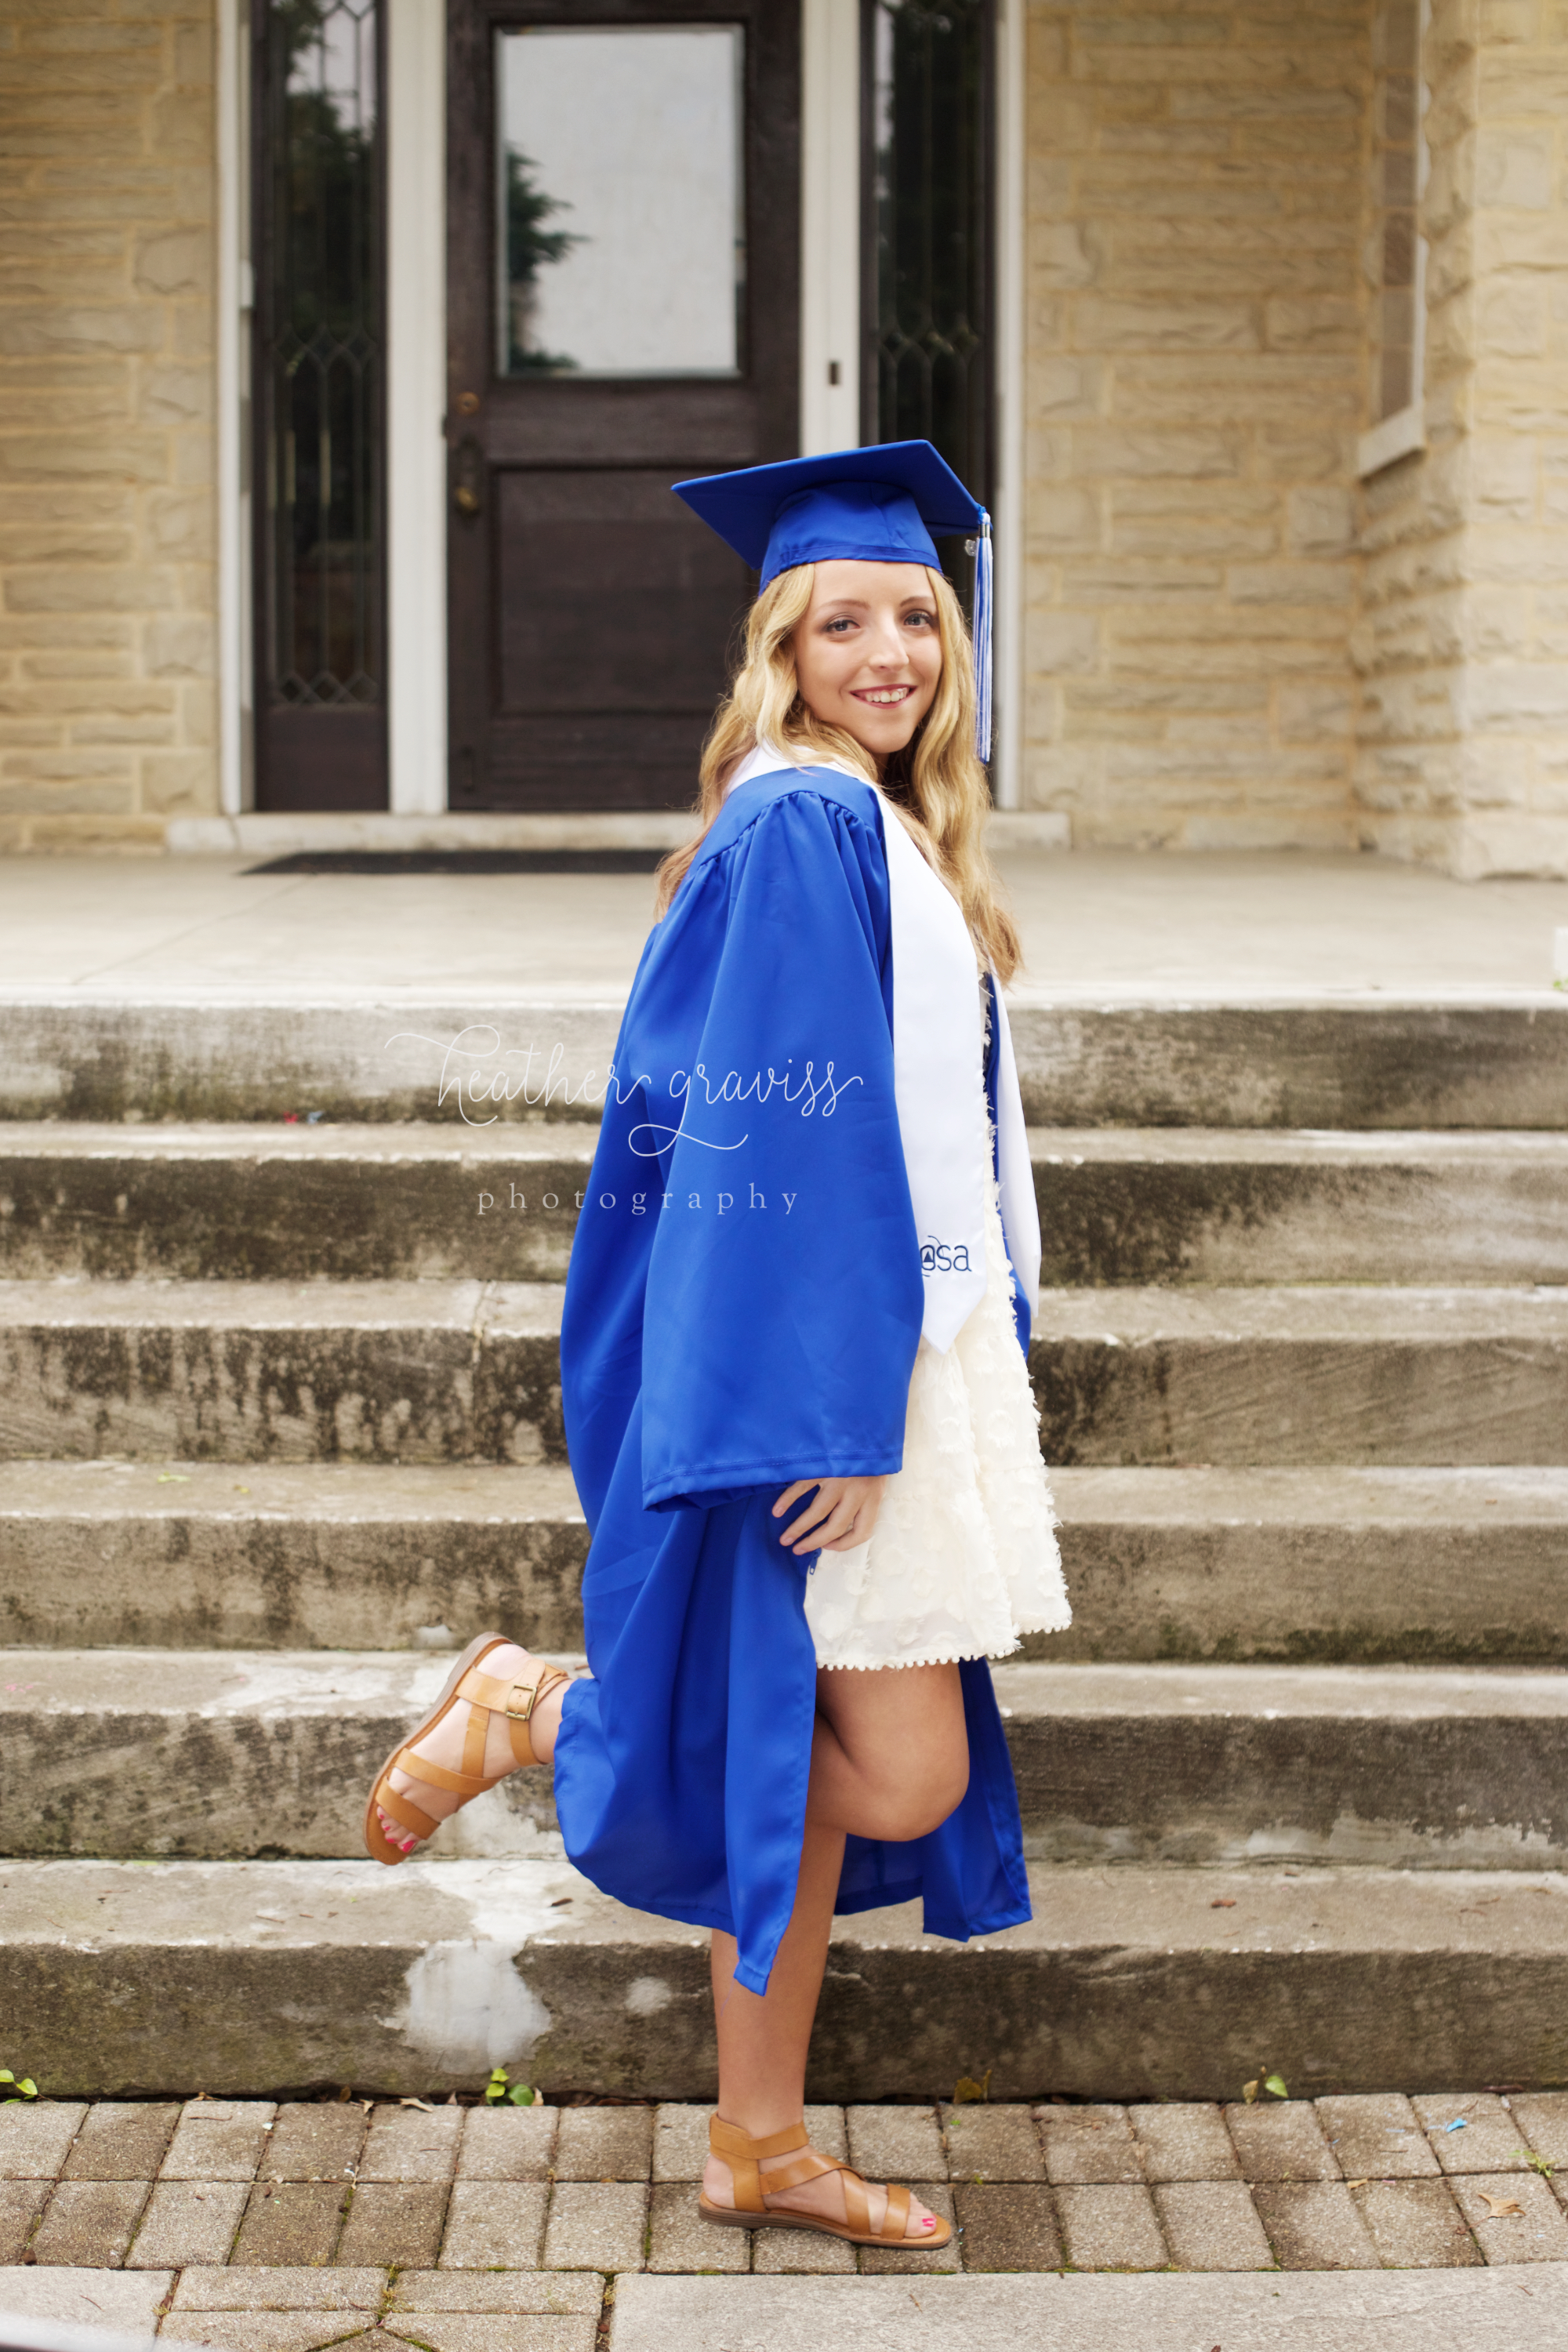 casual-cap-and-gown.jpg